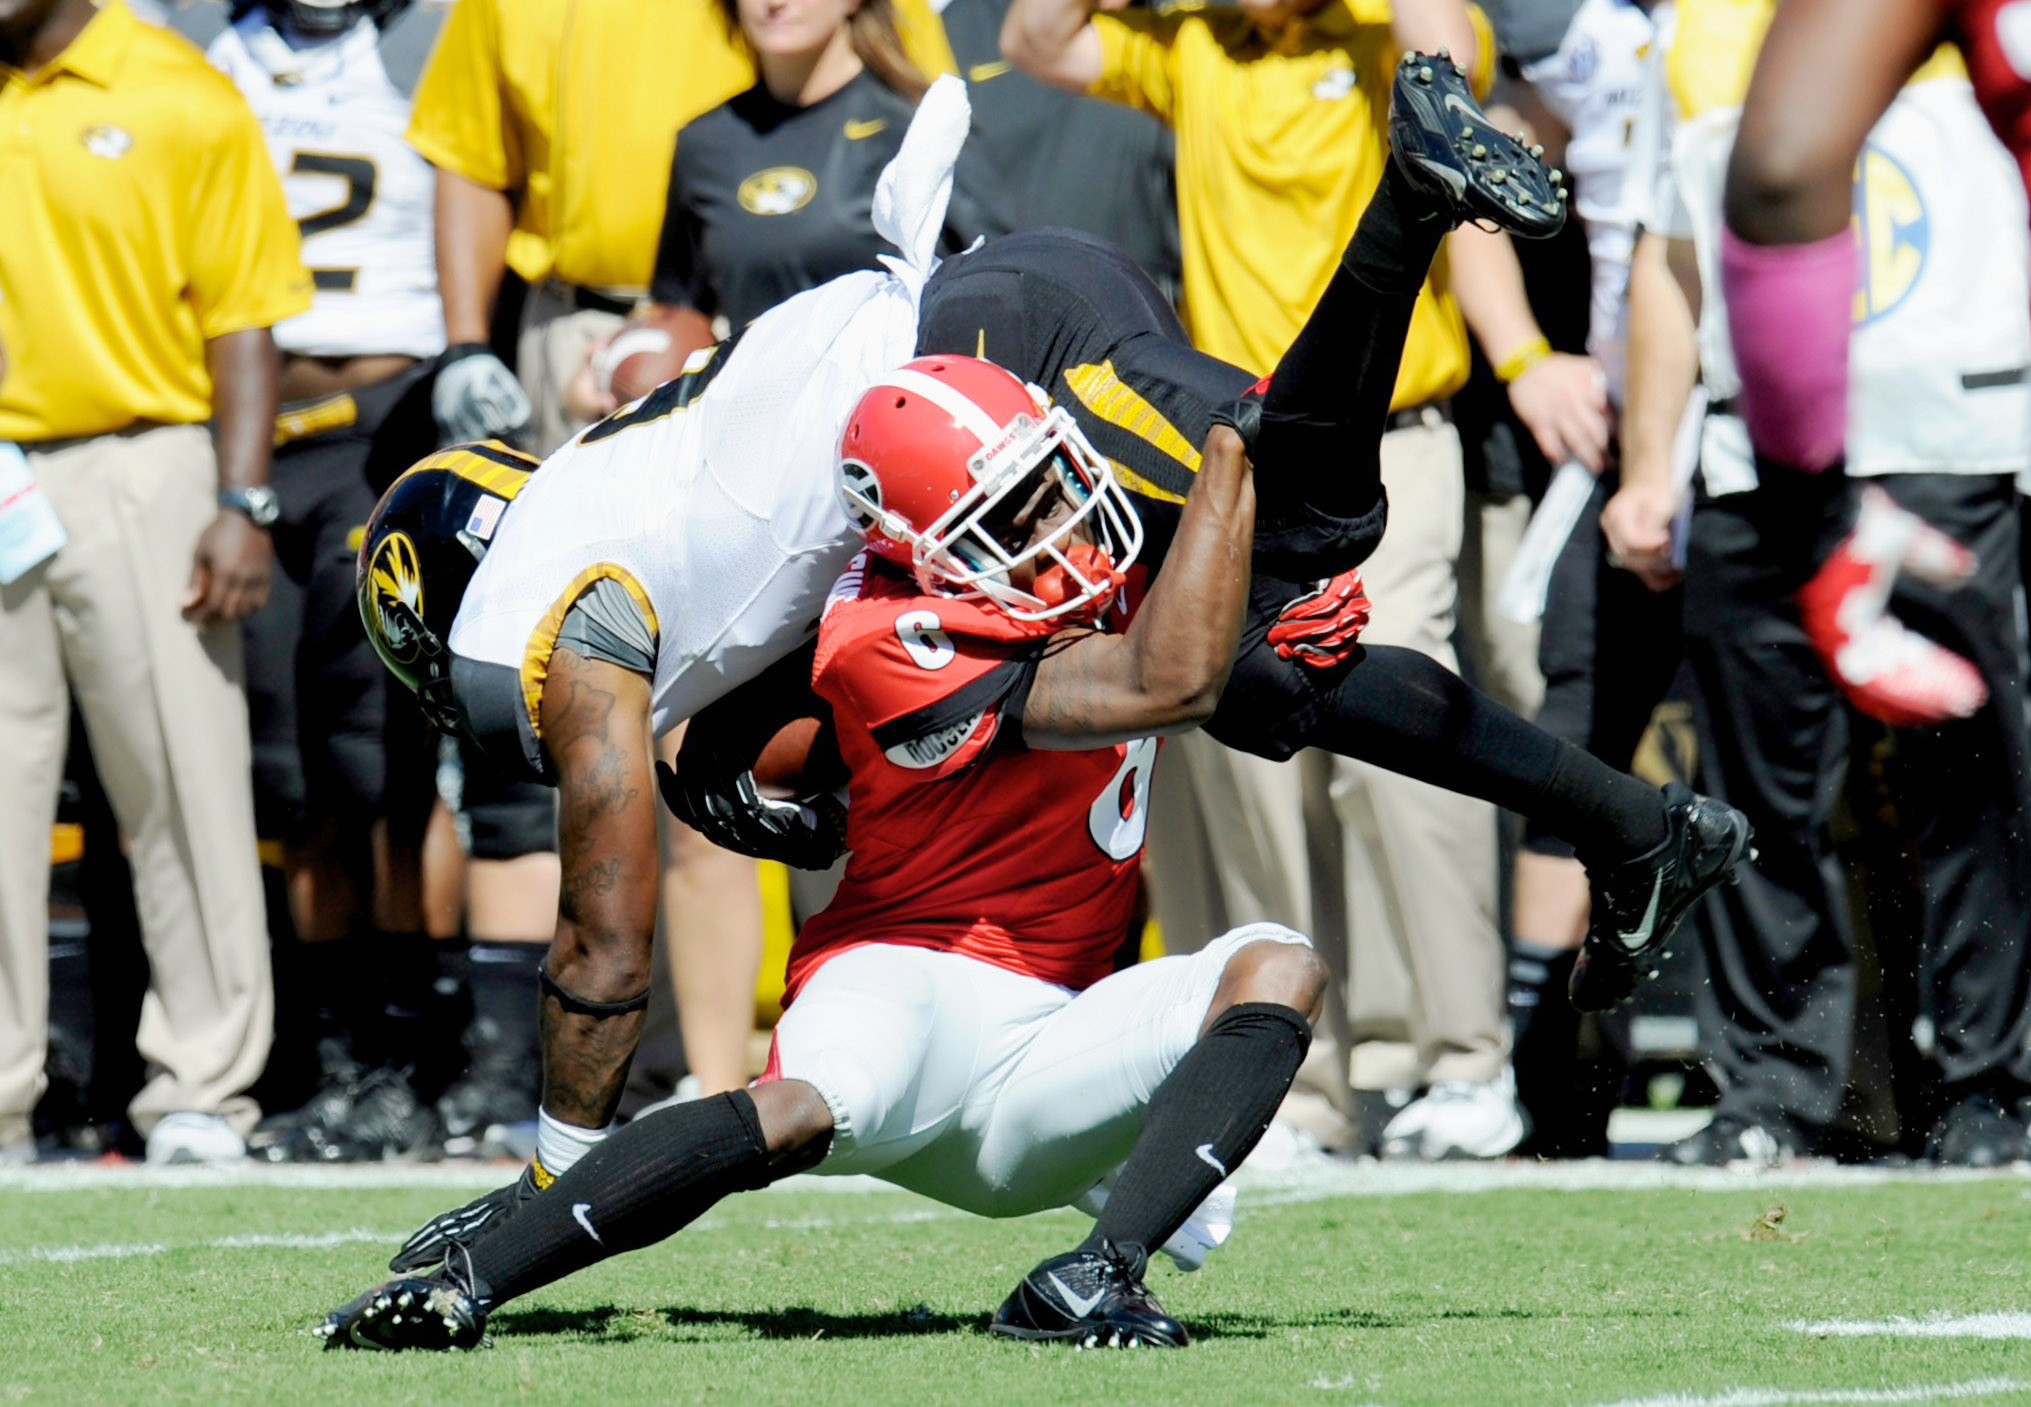 Georgia Bulldogs cornerback Shaq Wiggins (6) tackles Missouri Tigers running back Marcus Murphy (6) during the second quarter at Sanford Stadium. Mandatory Credit: Dale Zanine-USA TODAY Sports